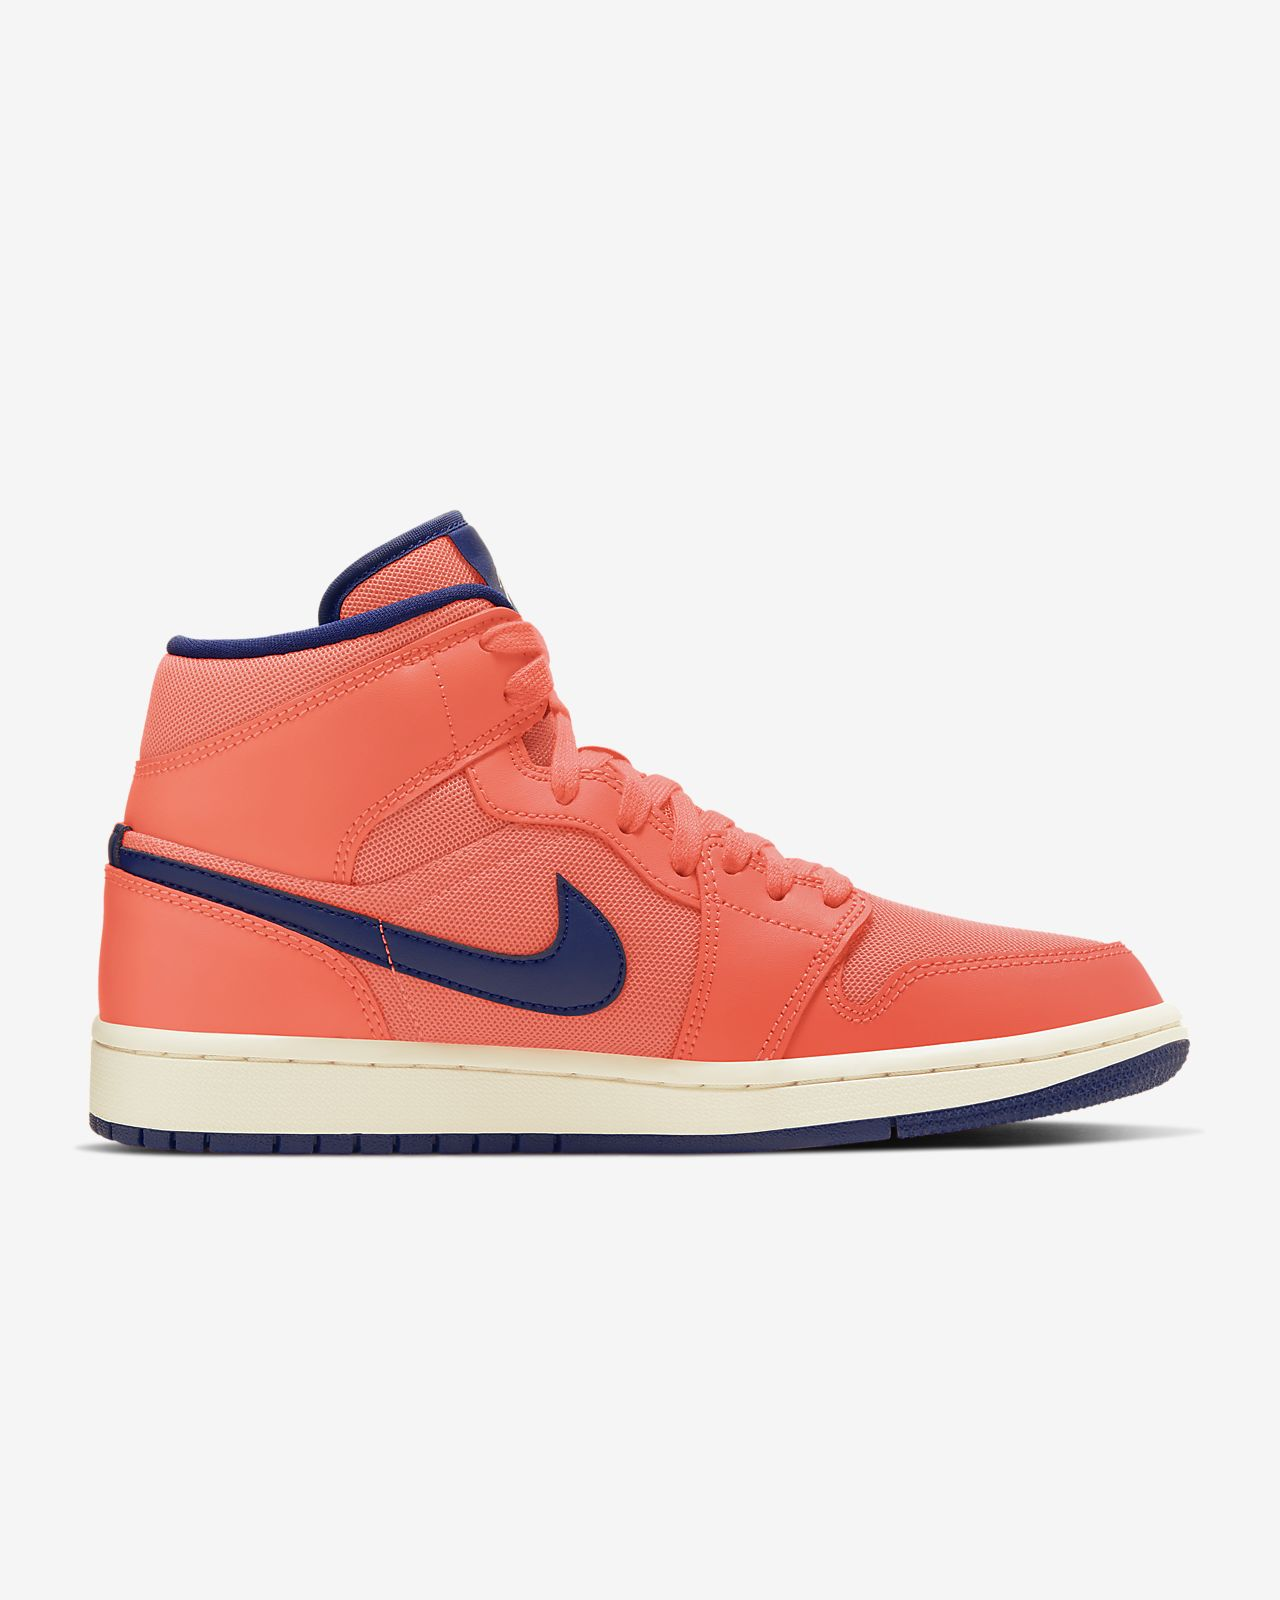 nike air jordan baskets mi-hautes orange